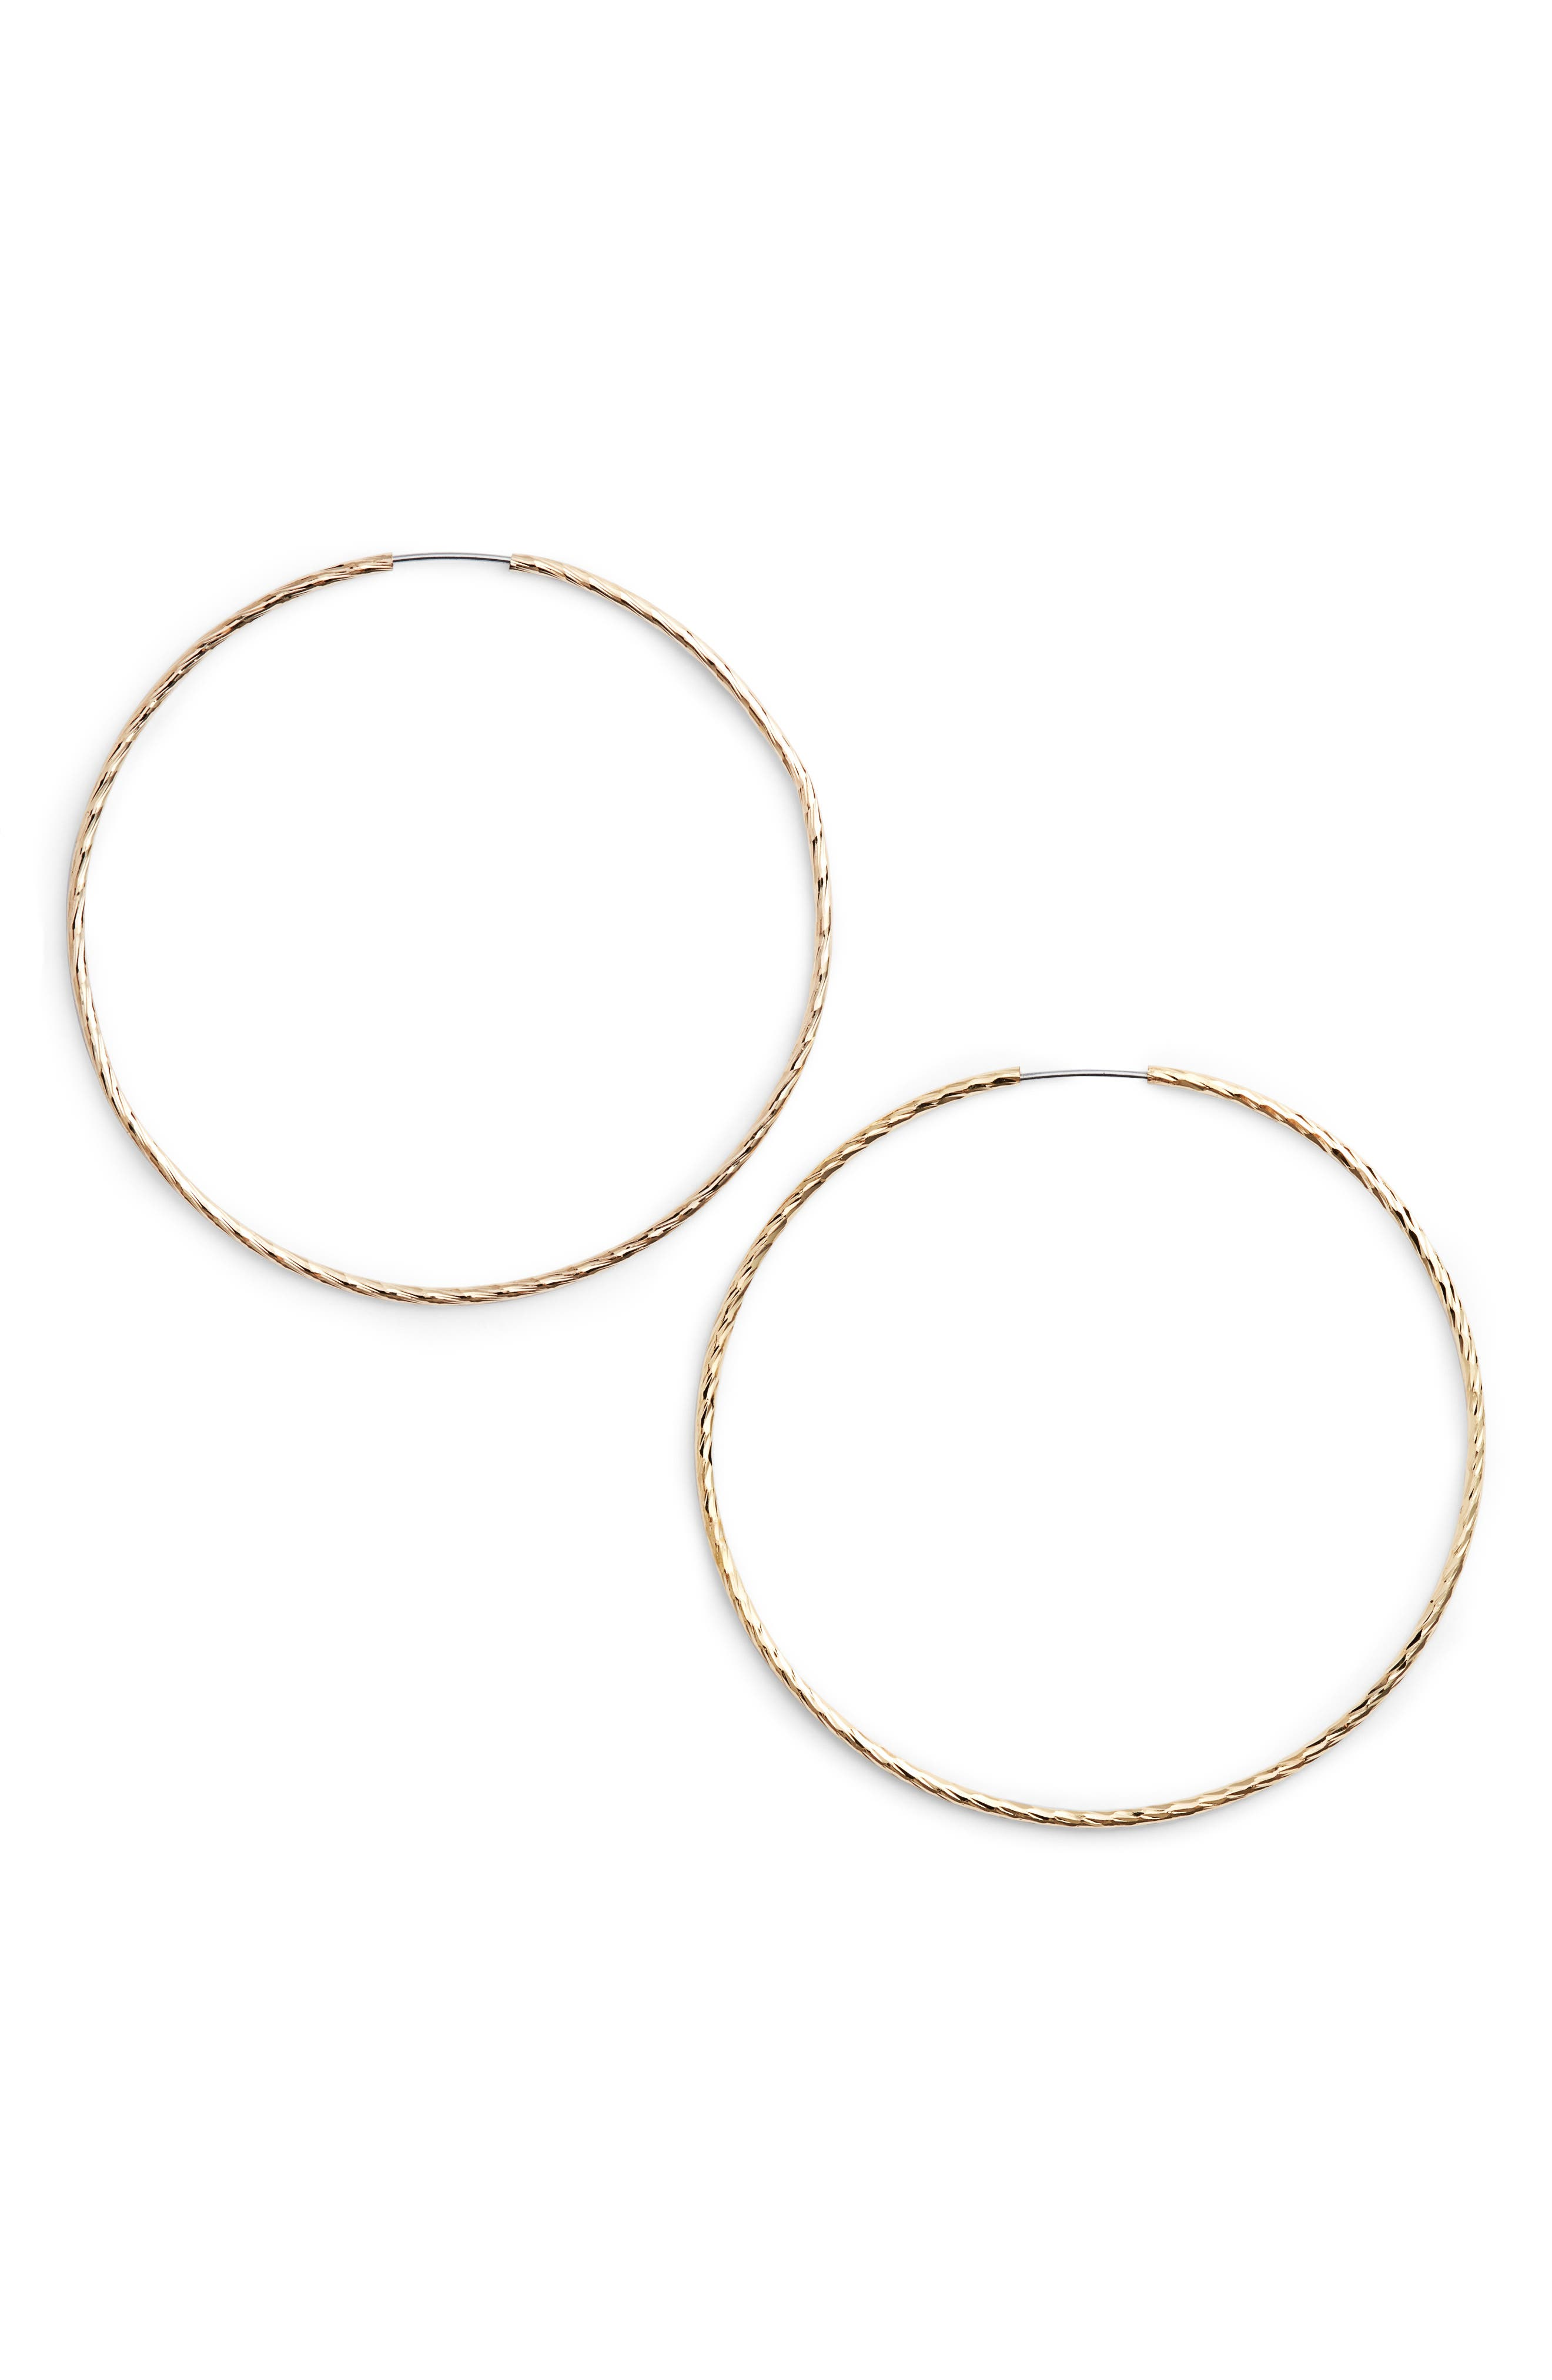 Main Image - Jules Smith Factor Hoop Earrings